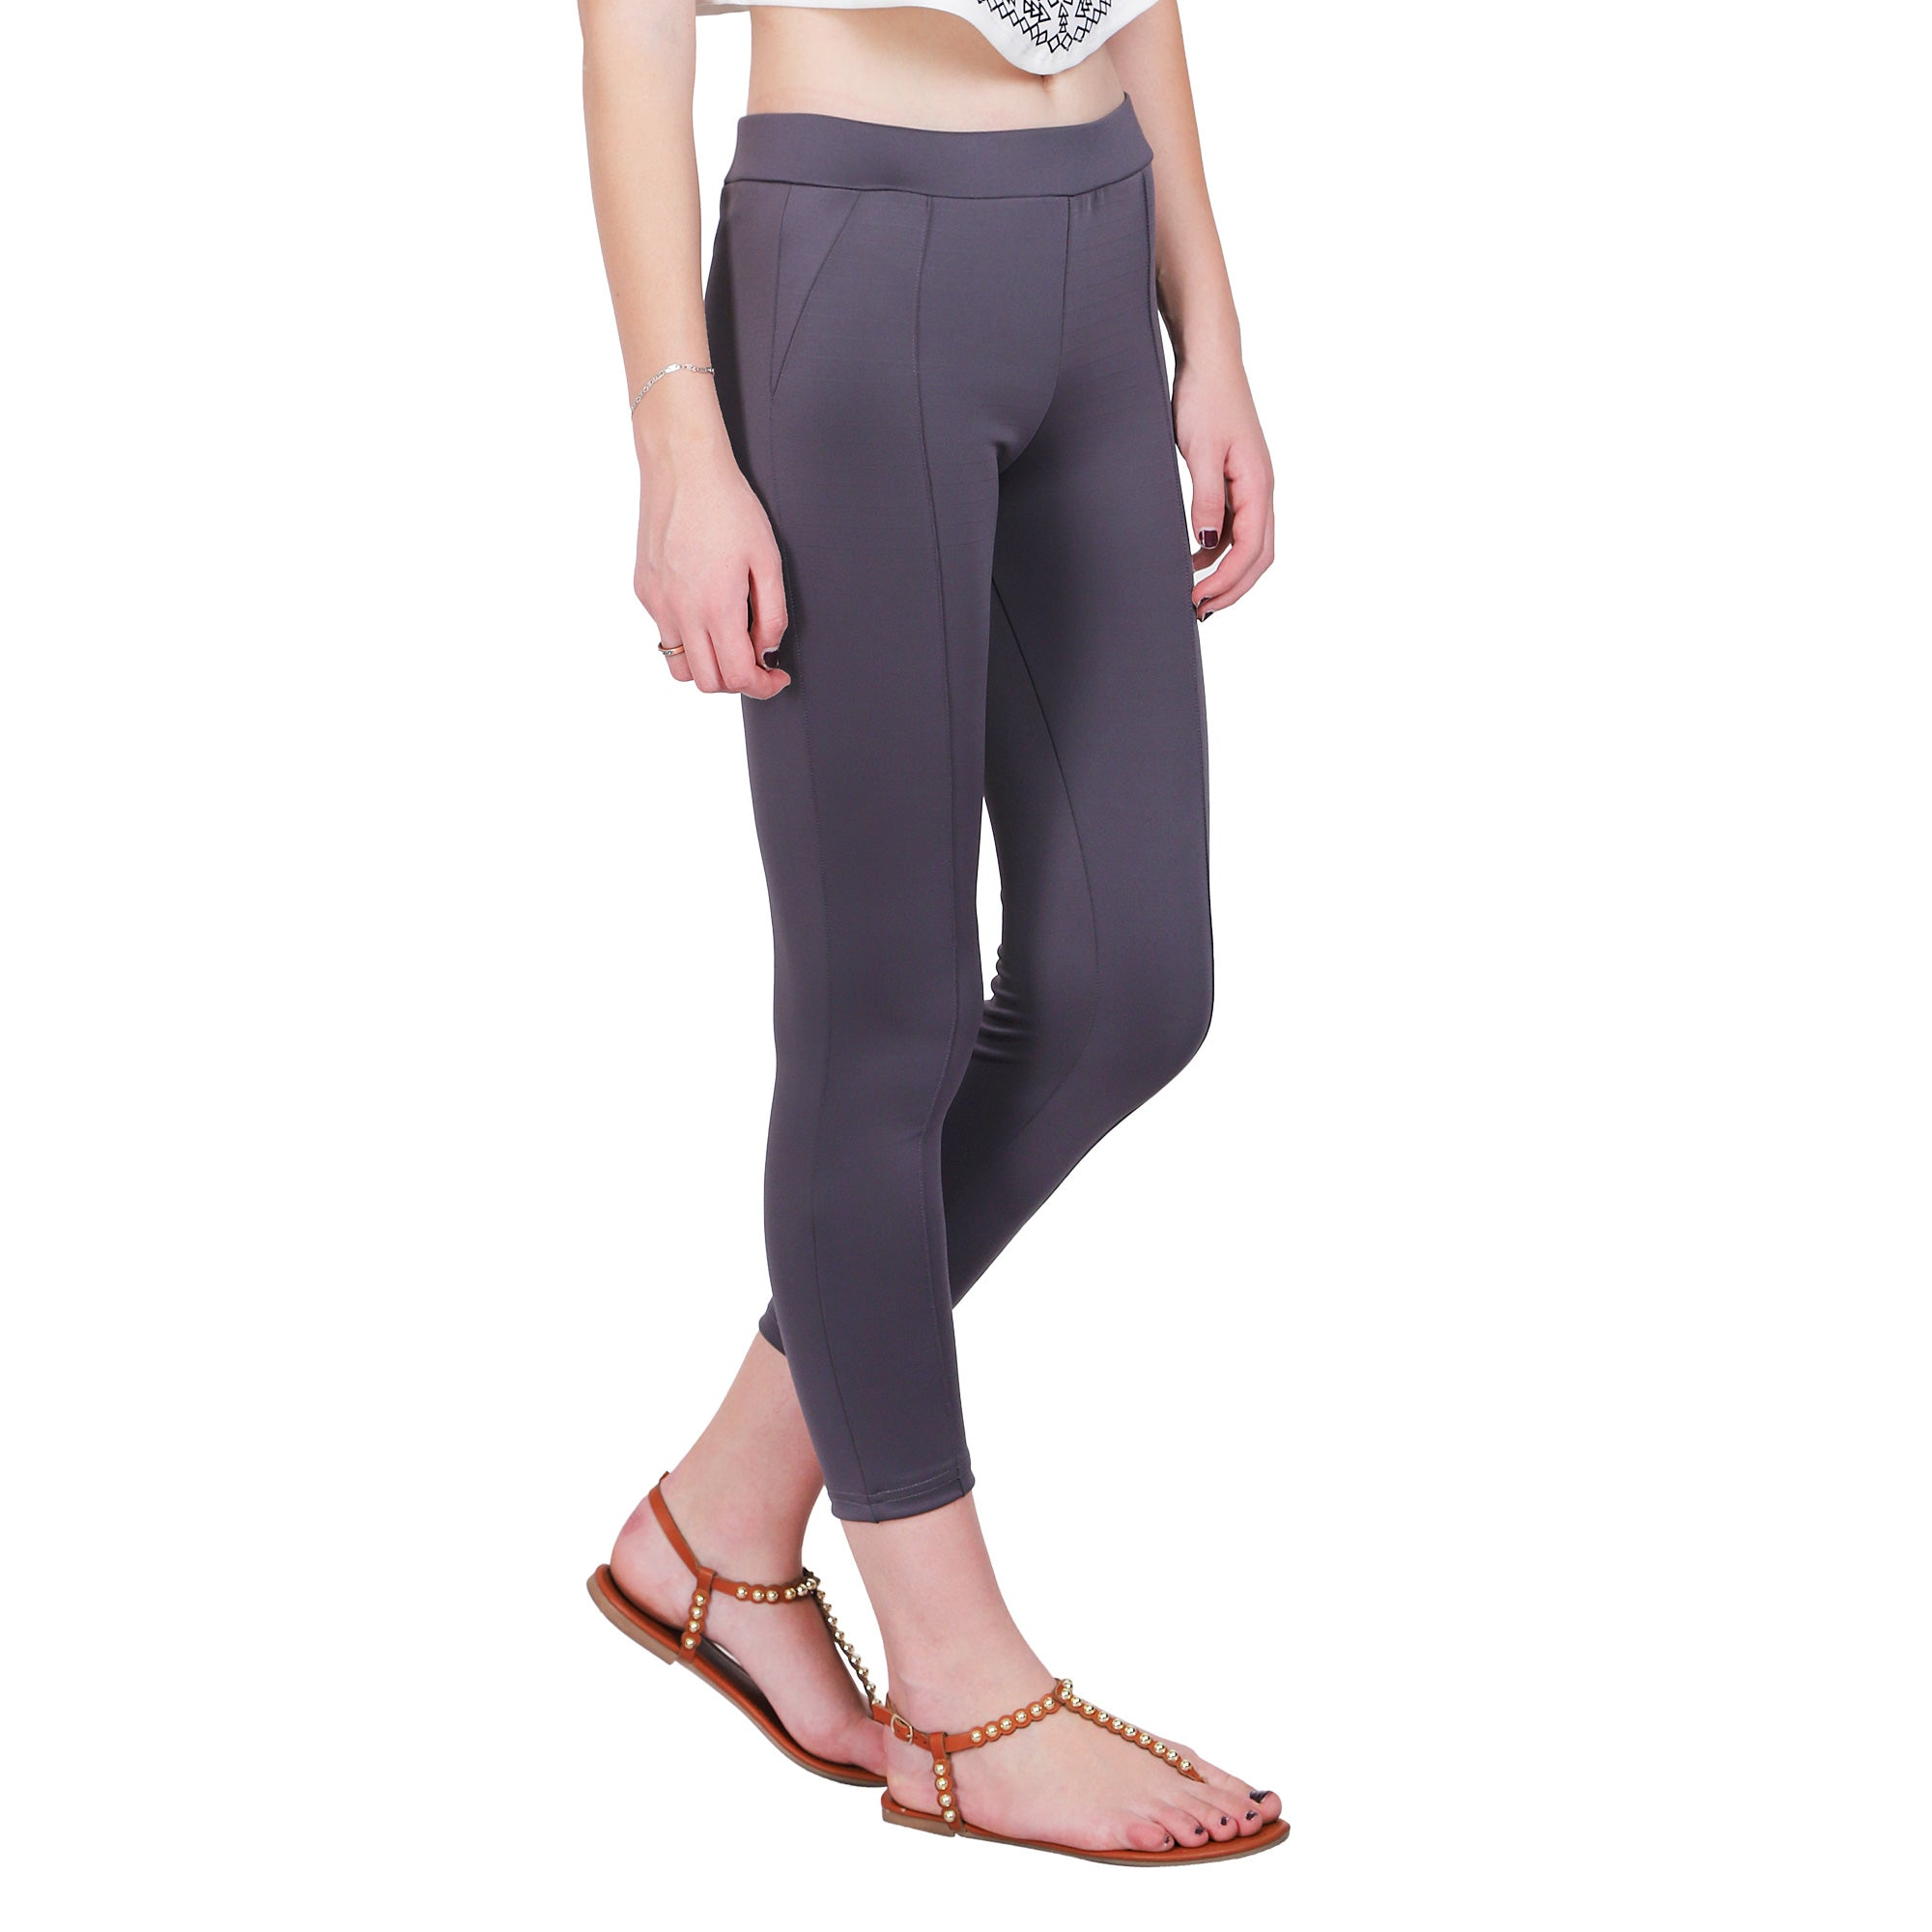 GREY SOLID JEGGINGS - Zomo